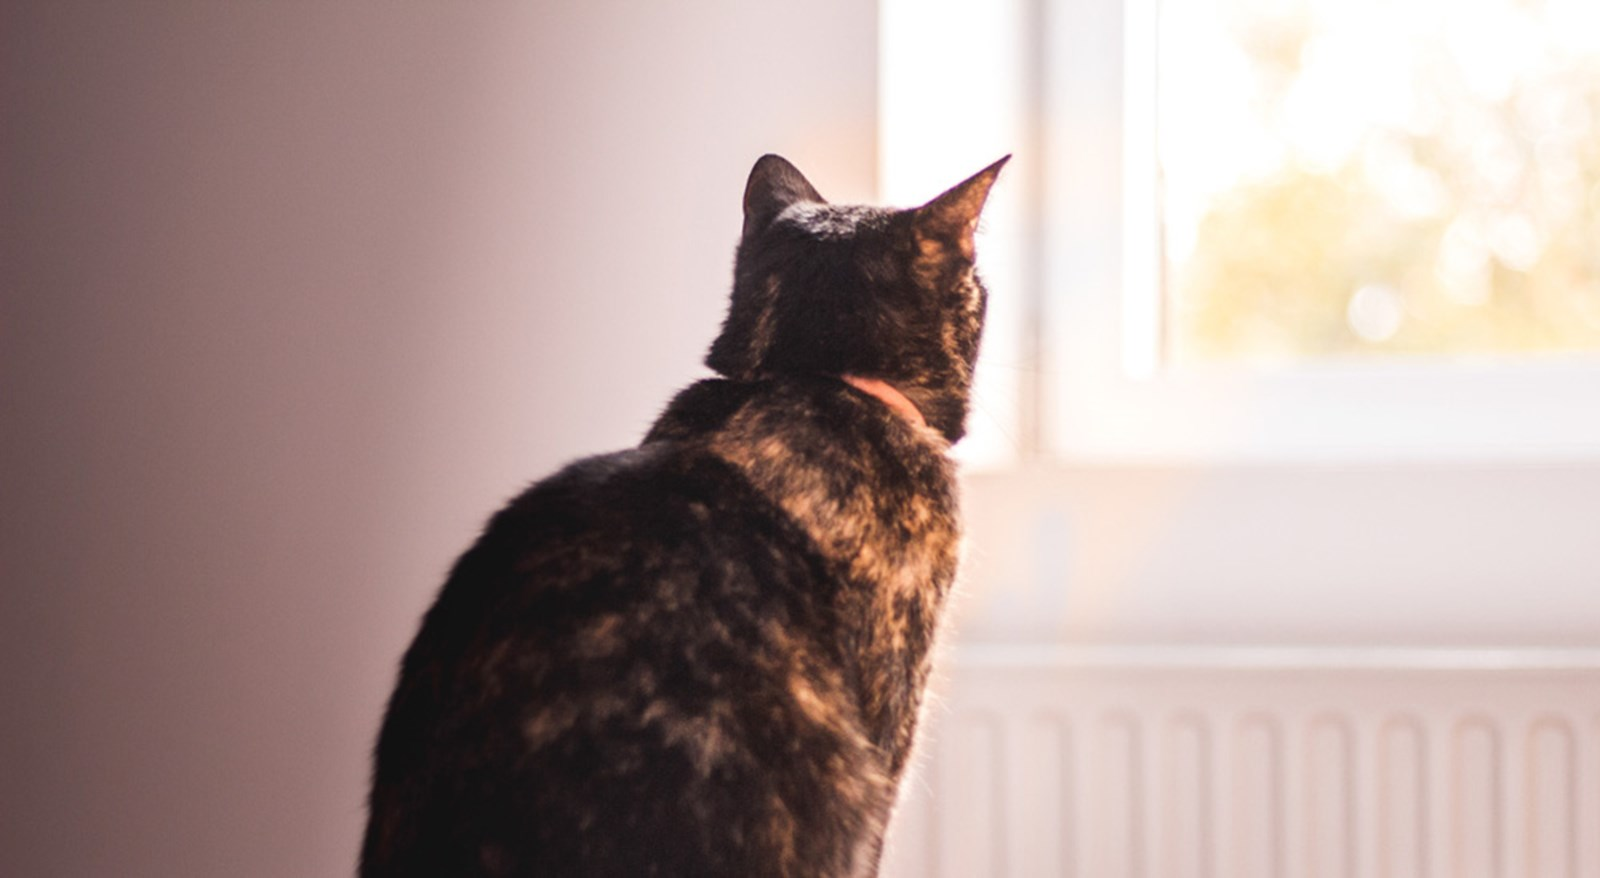 brown cat standing in front of radiator looking out of window